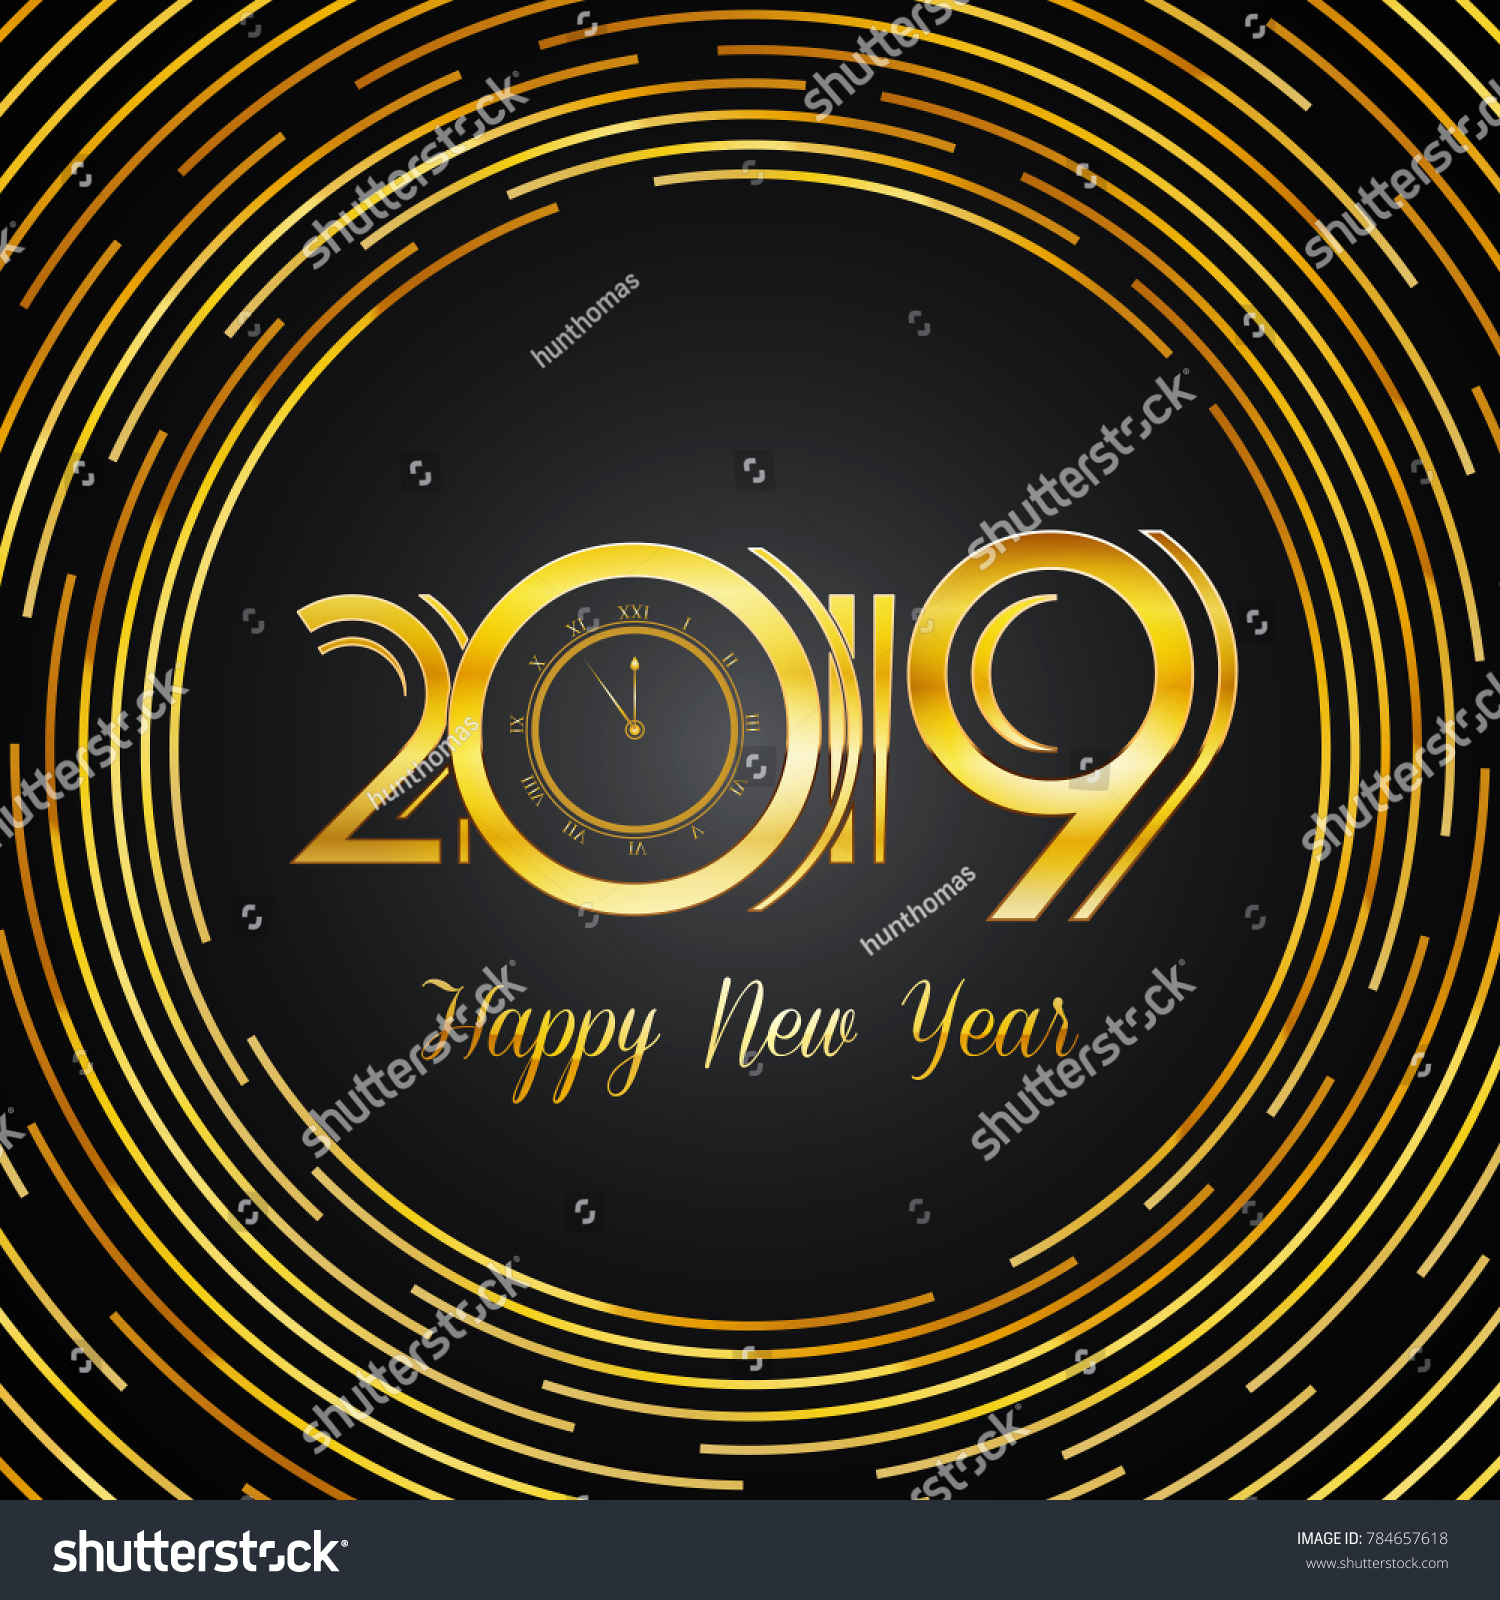 Happy new year 2019 greeting card stock vector 784657618 happy new year 2019 greeting card golden numbers on dark background with round lines design kristyandbryce Choice Image